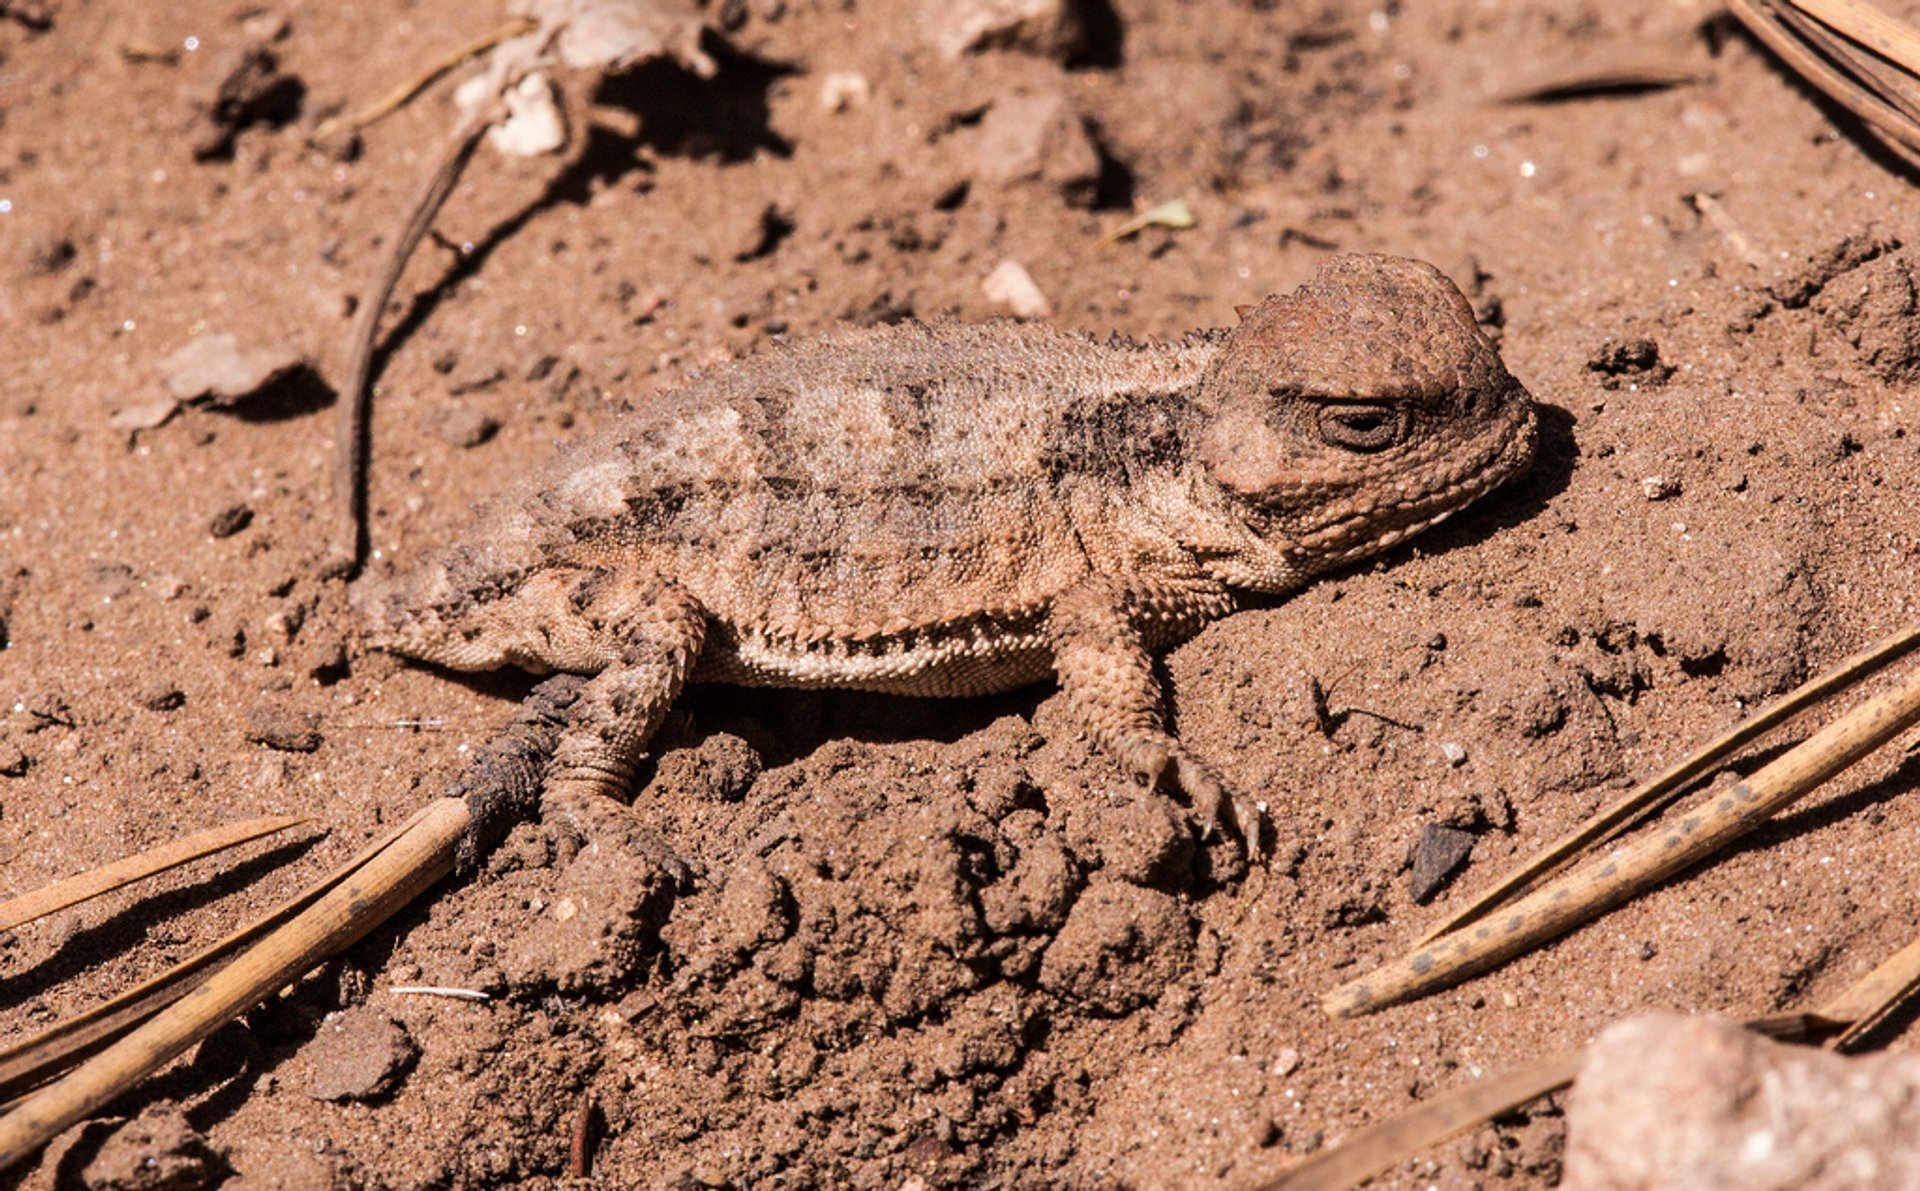 Baby horned lizard remained motionless in the dusty road near the Grand Canyon, Arizona, USA 2020